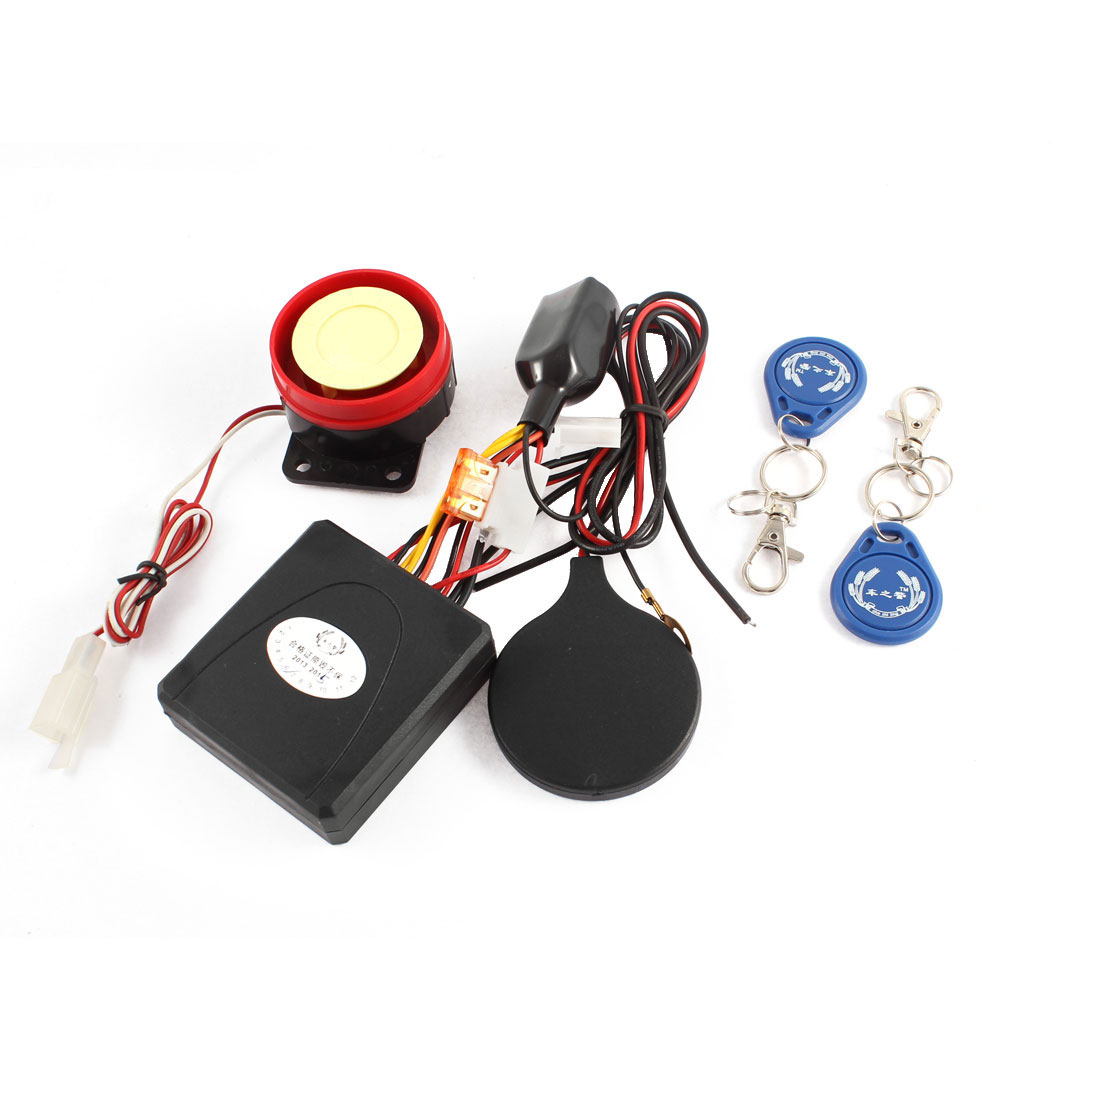 Motorcycle Anti-theft ID Card Induction Lock Safety Security Alarm System Set